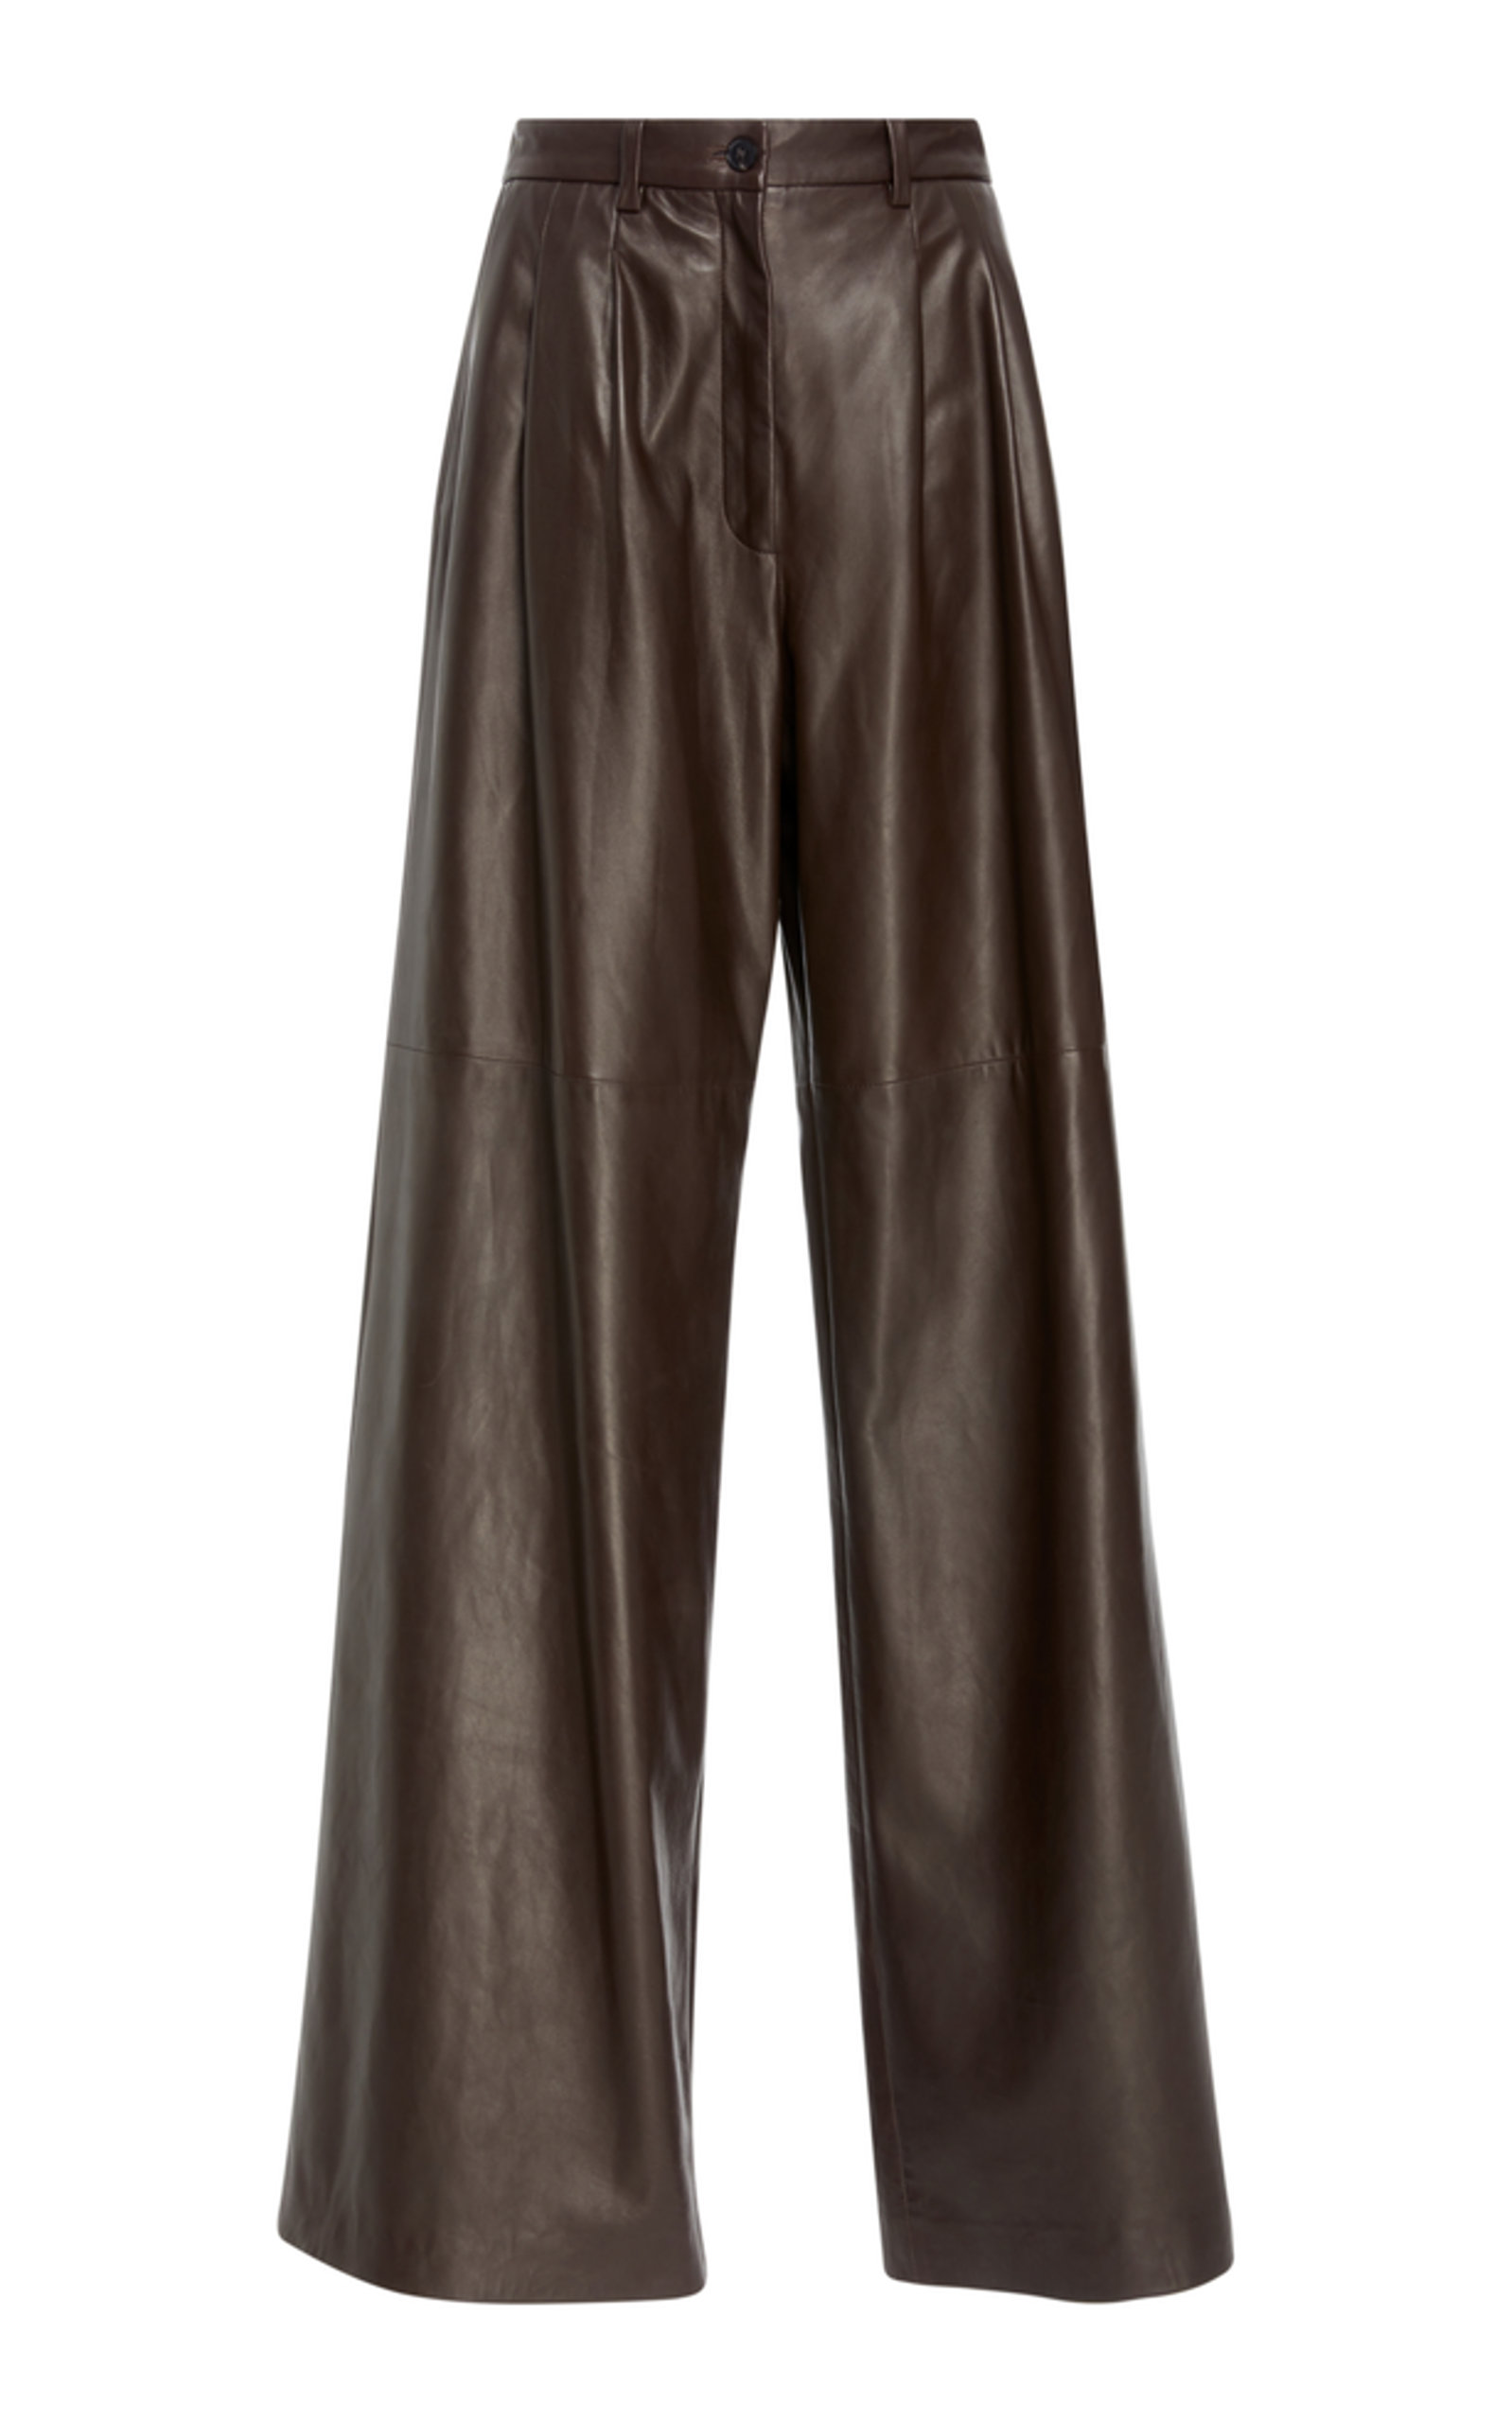 Nico Leather Wide-Leg Pants - Brown Size 10